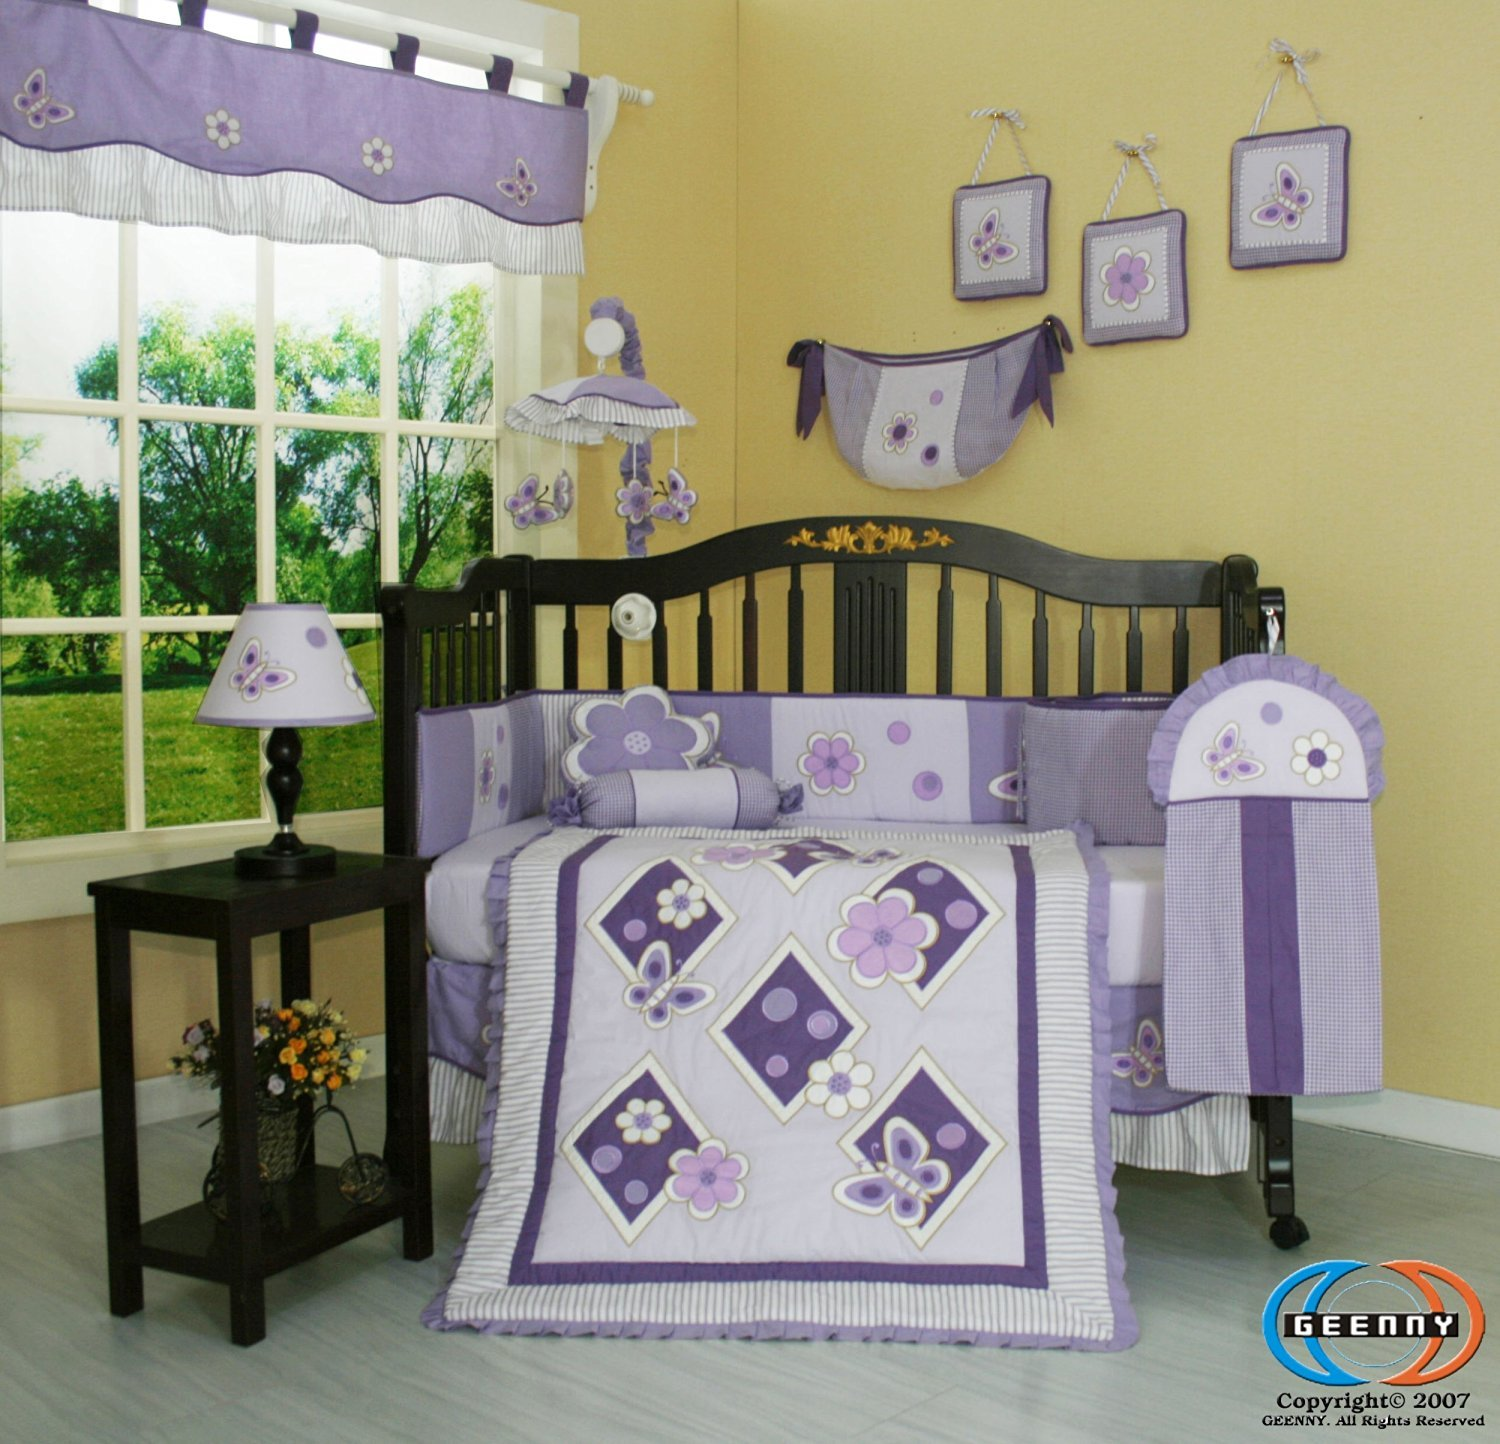 Baby bedding crib sets - Amazon Com Geenny Boutique 13 Piece Crib Bedding Set Lavender Butterfly Baby Bedding Crib Sets Girl Baby